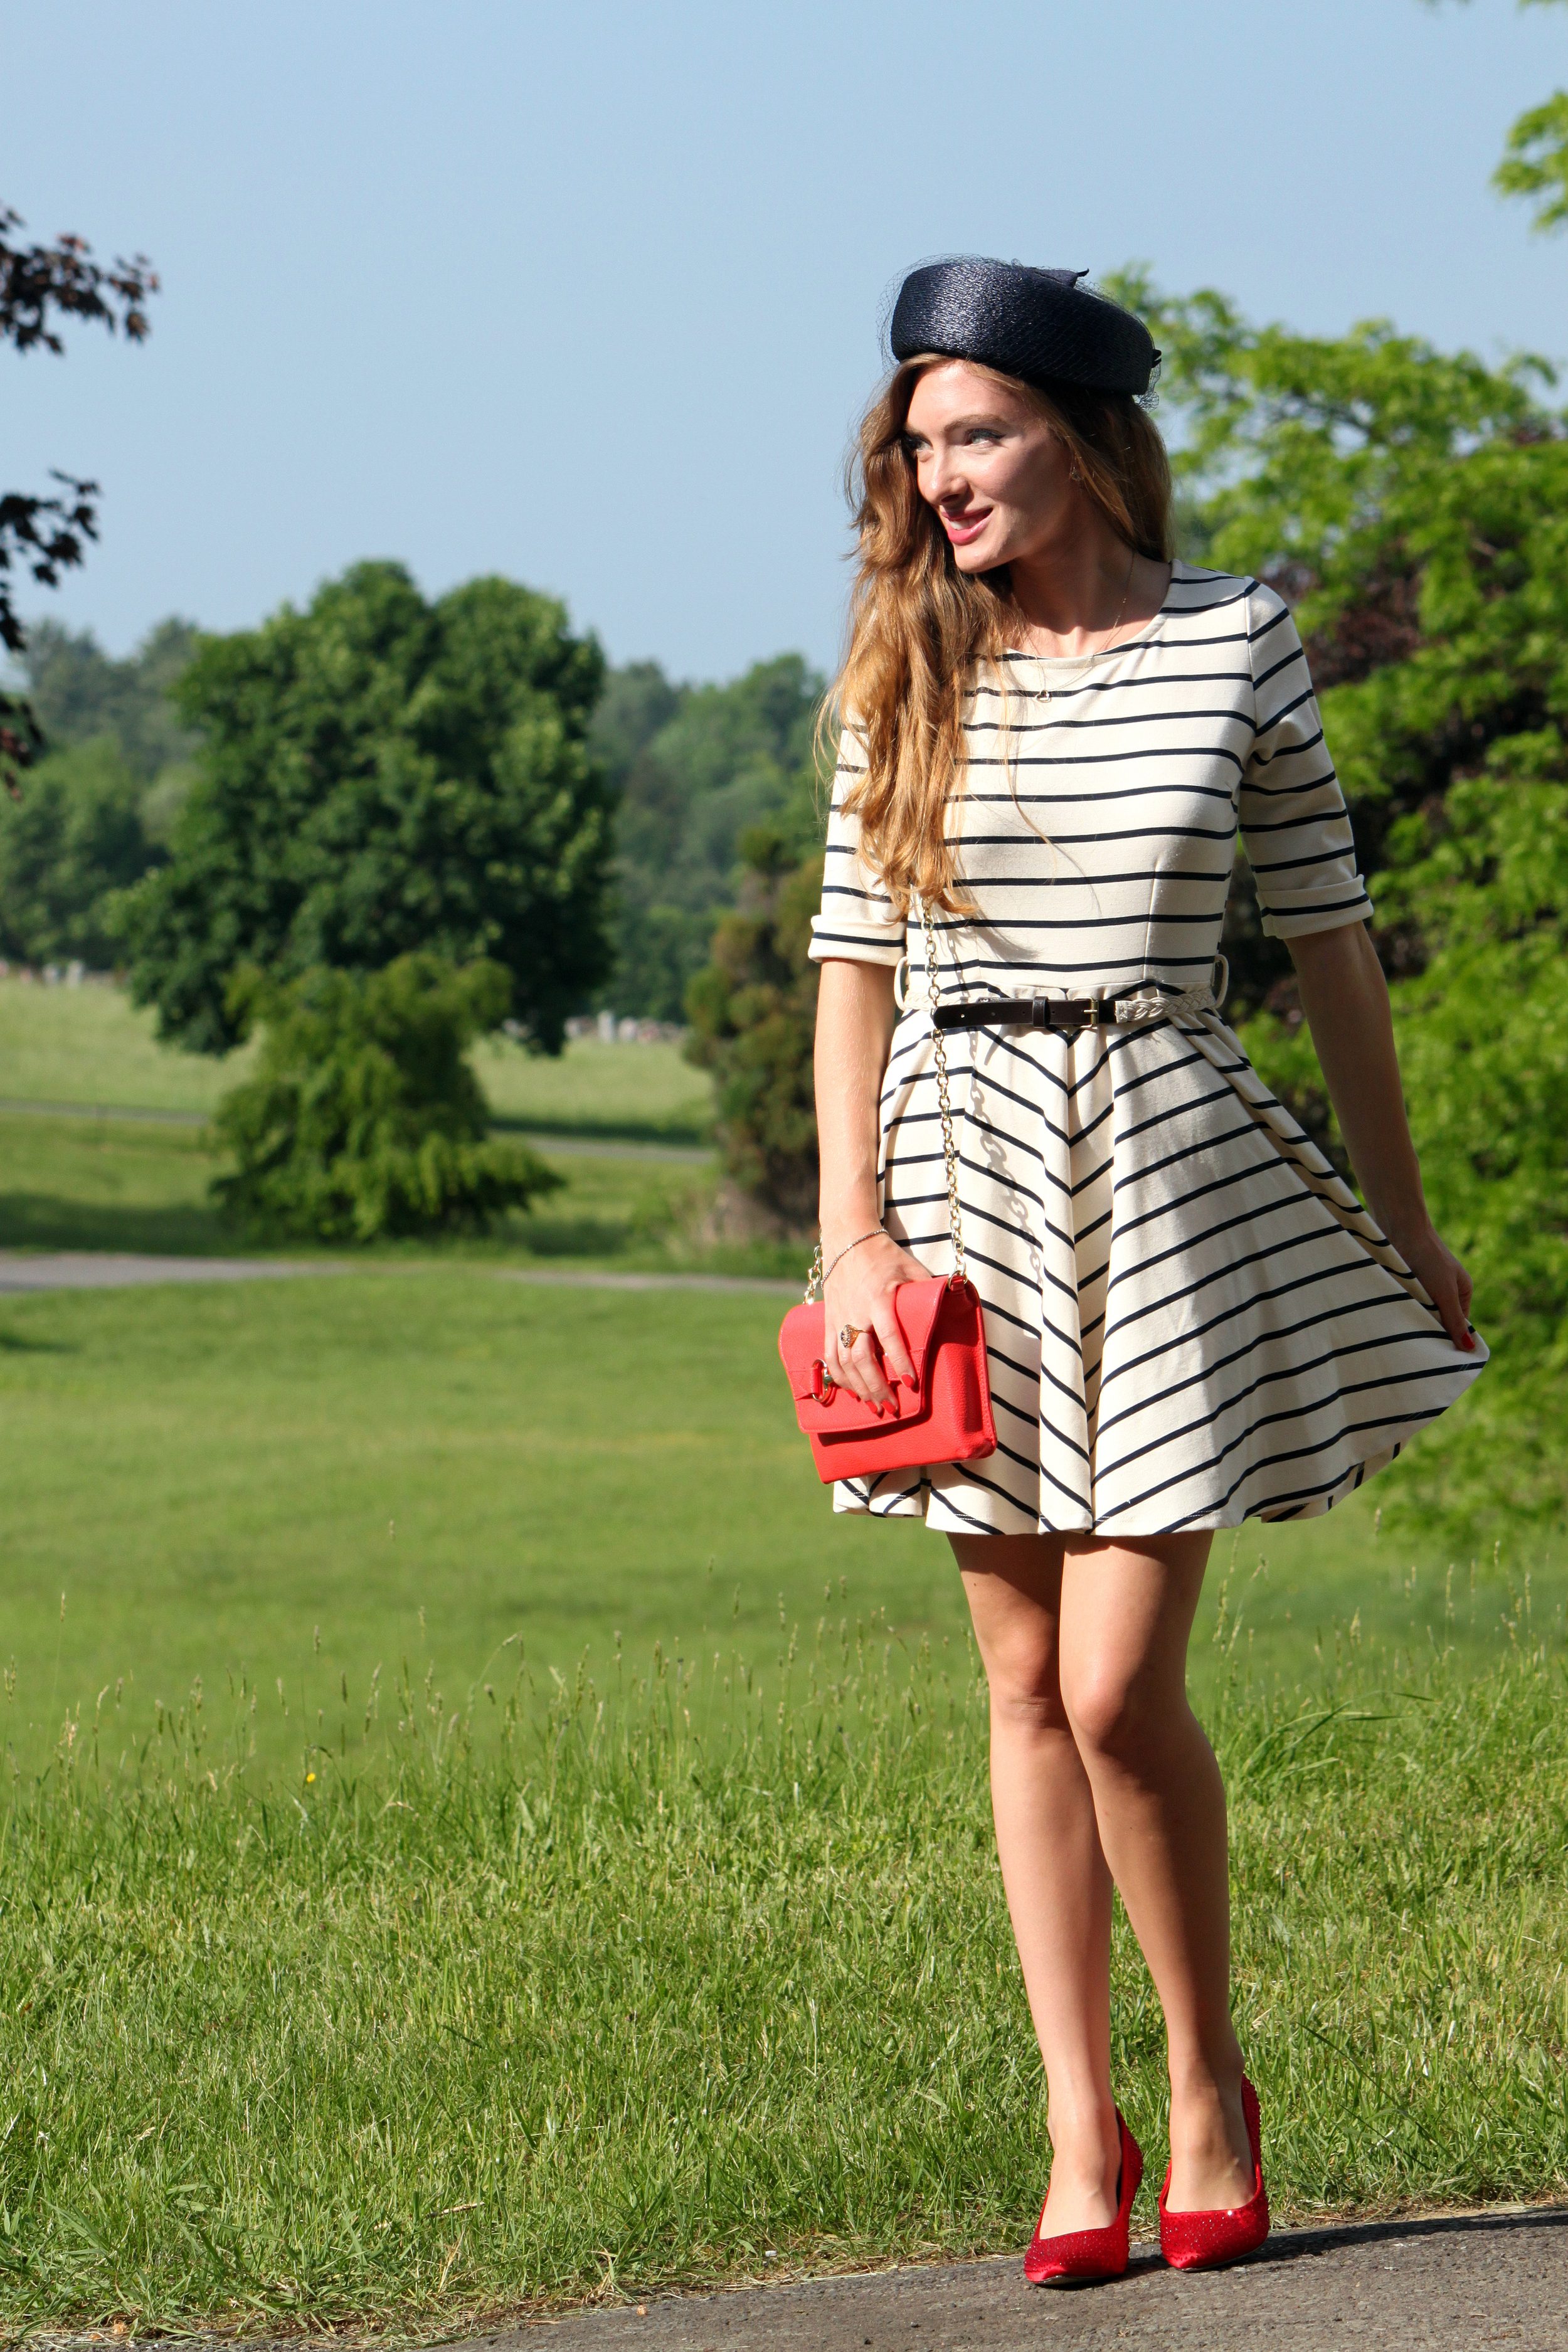 Dress Modcloth, Bag Bag Banana Republic, Hat vintage, Shoes DSW, Ring Jacquline Kennedy reproduction